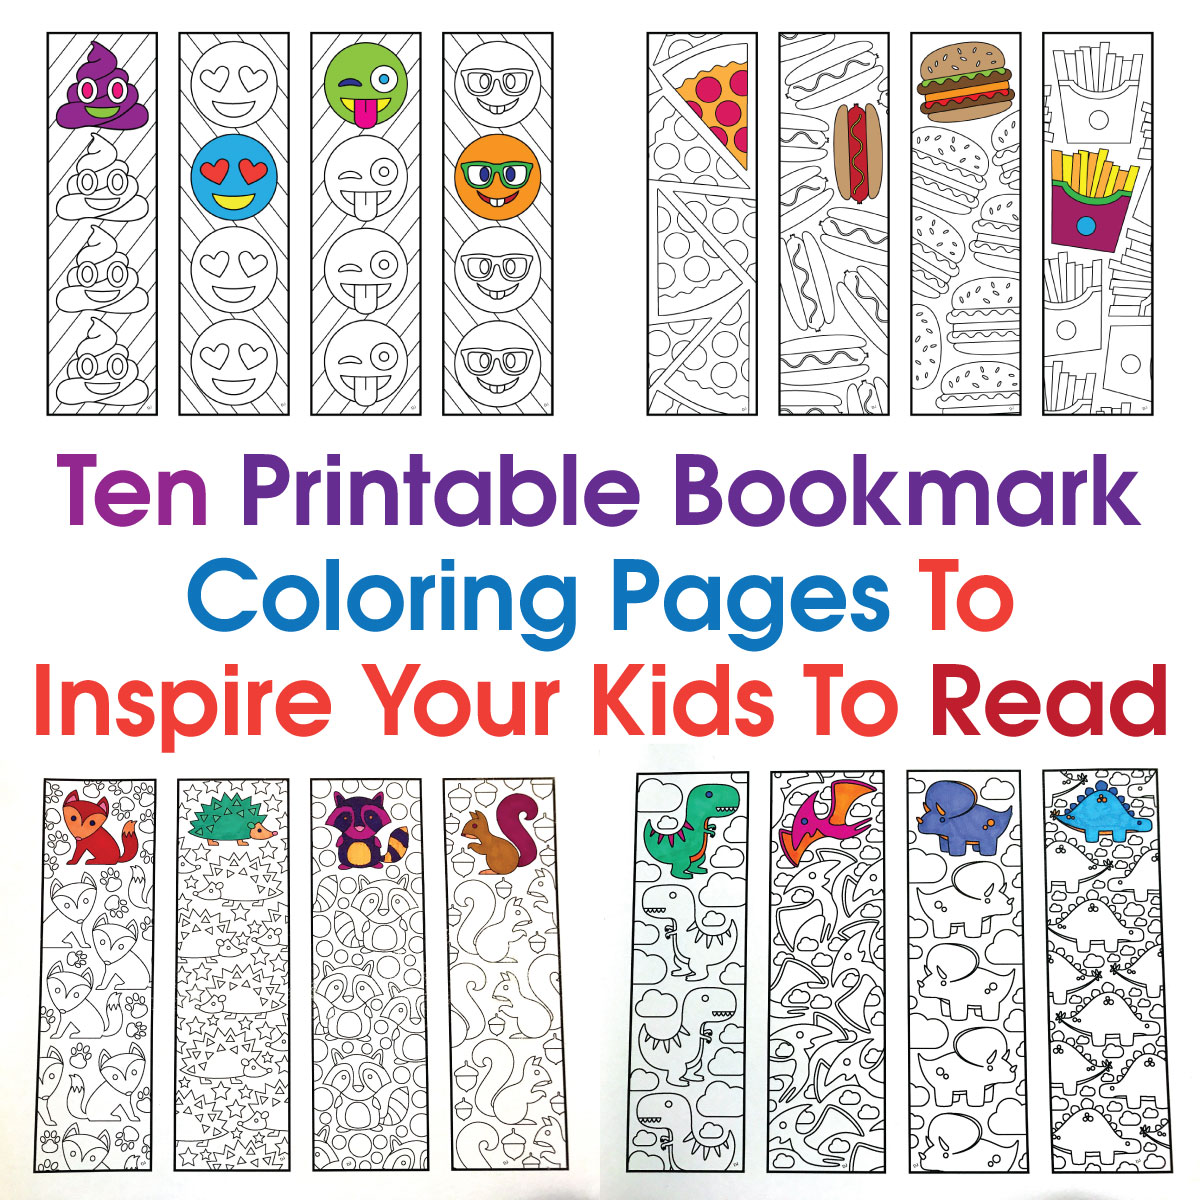 picture regarding Printable Bookmark titled 10 Printable Bookmark Coloring Webpages In direction of Encourage Your Little ones